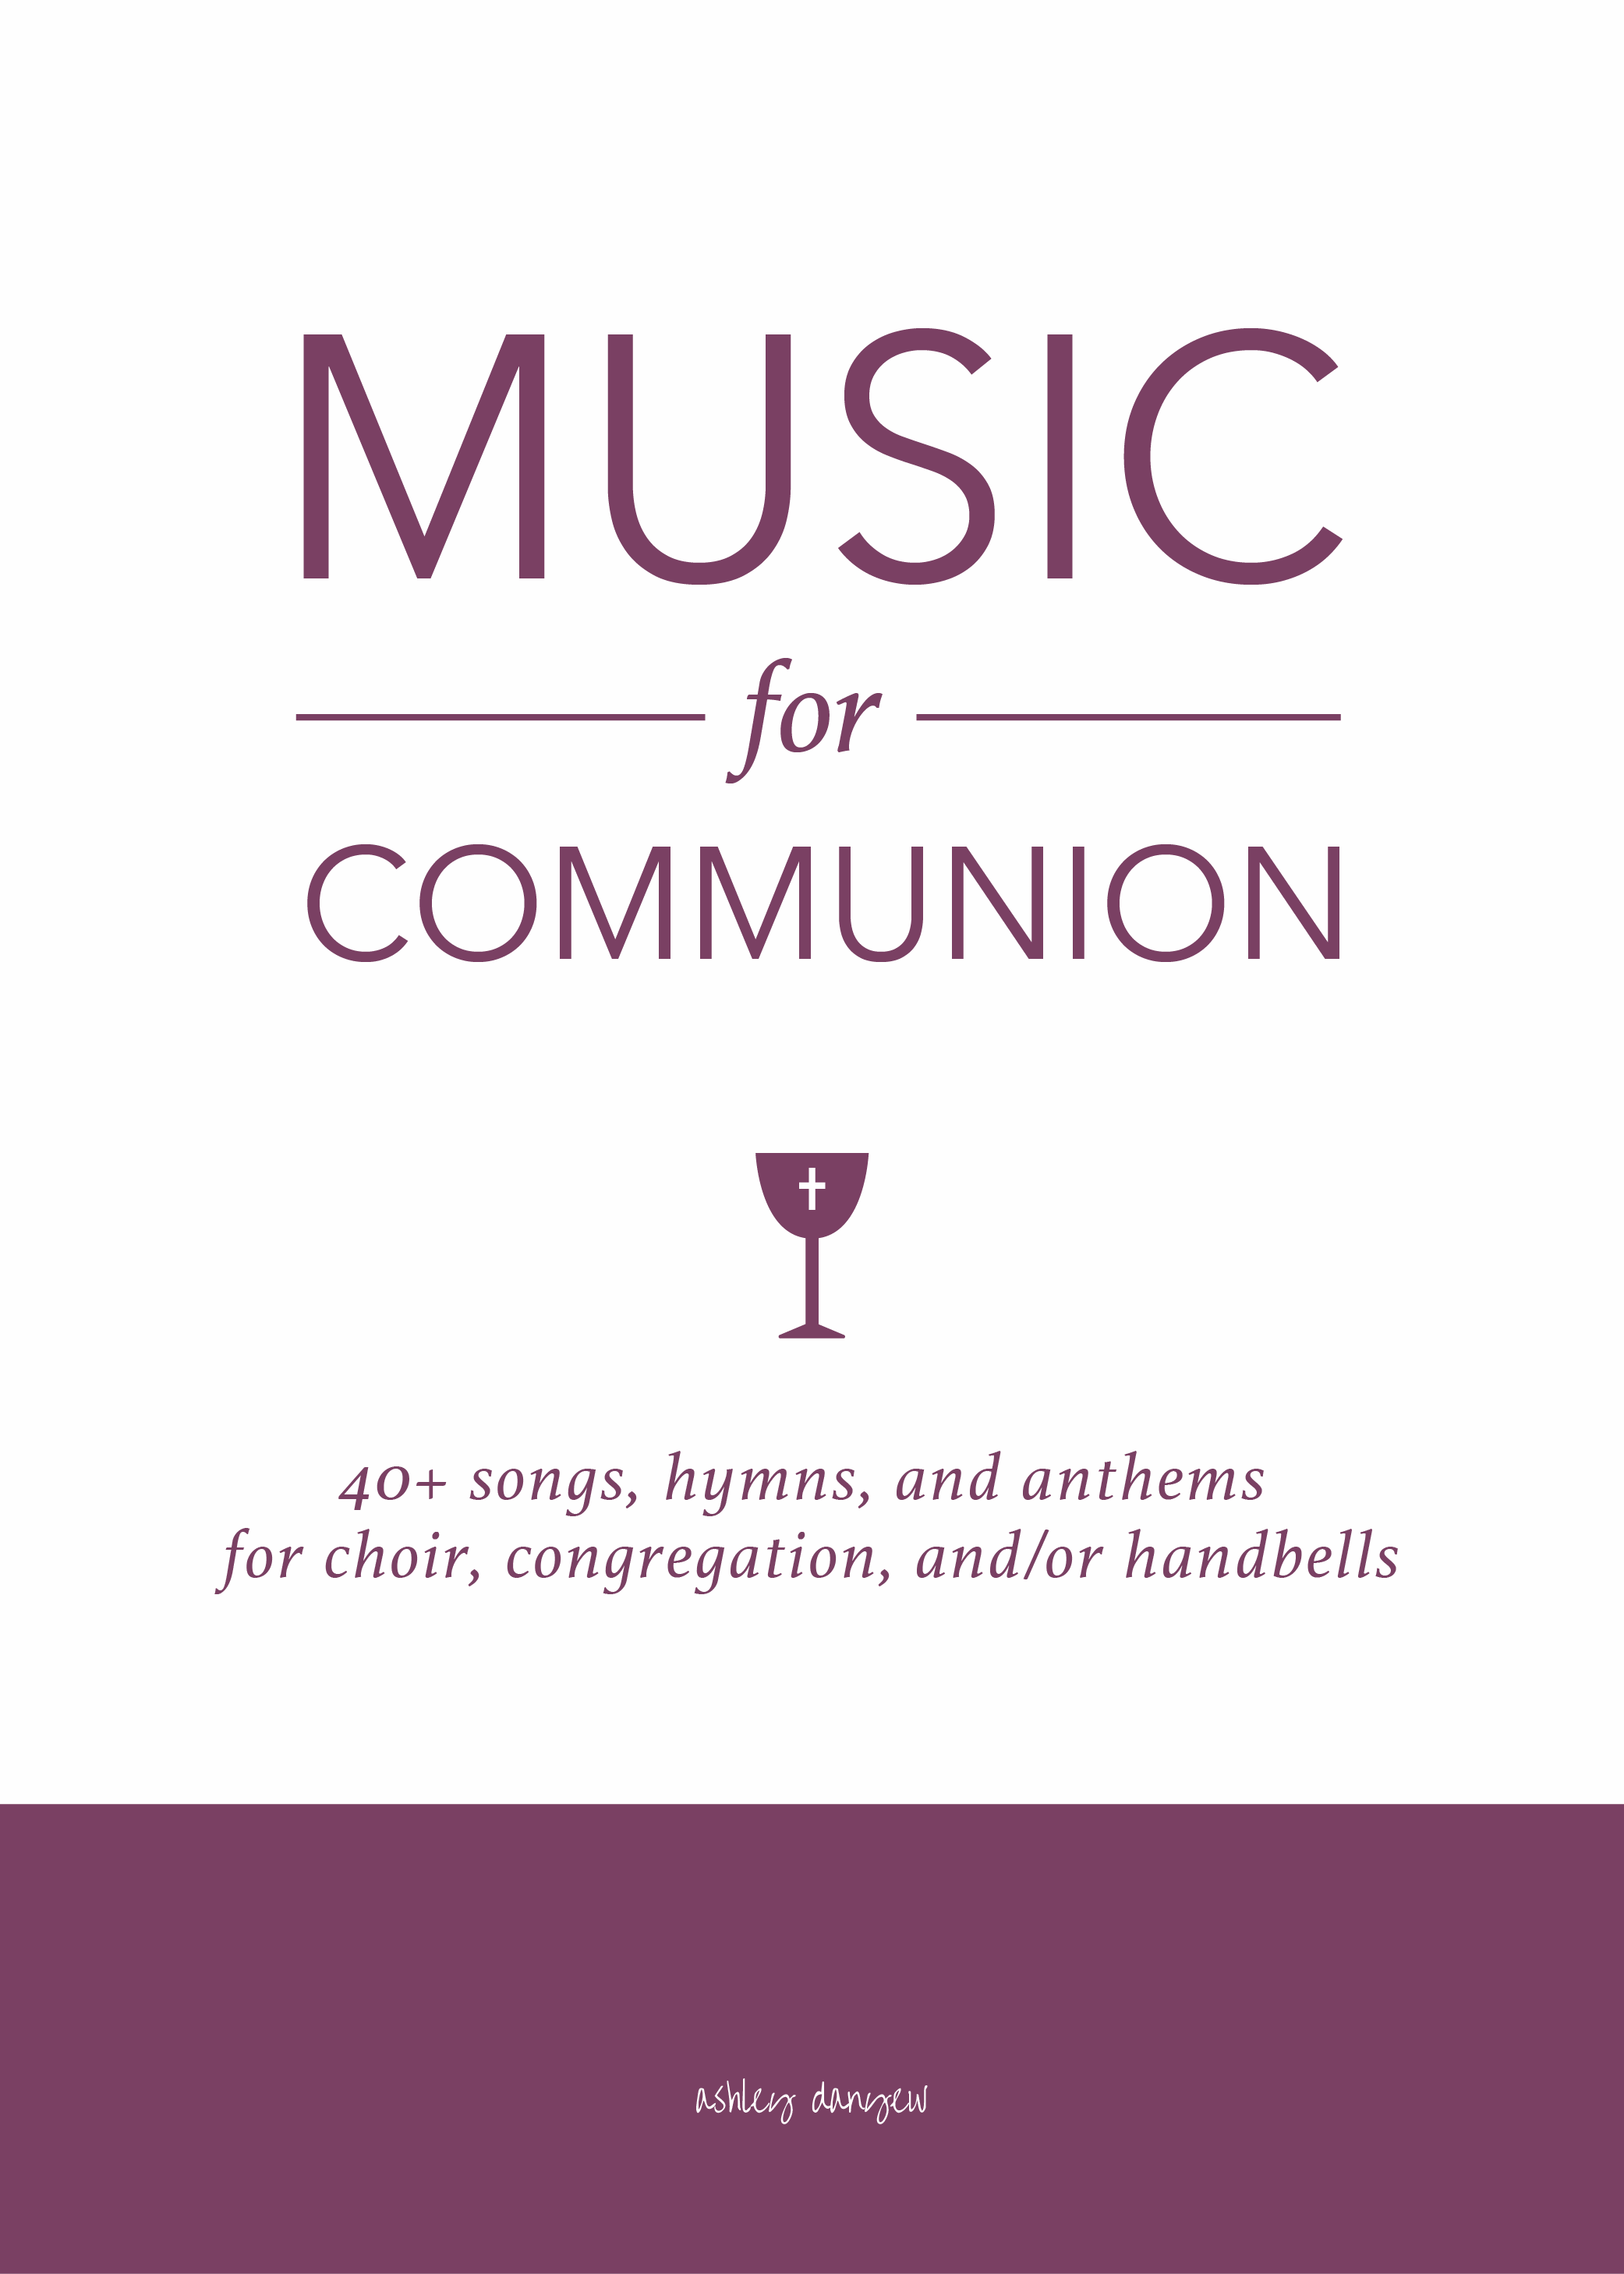 Music for Communion-01.png